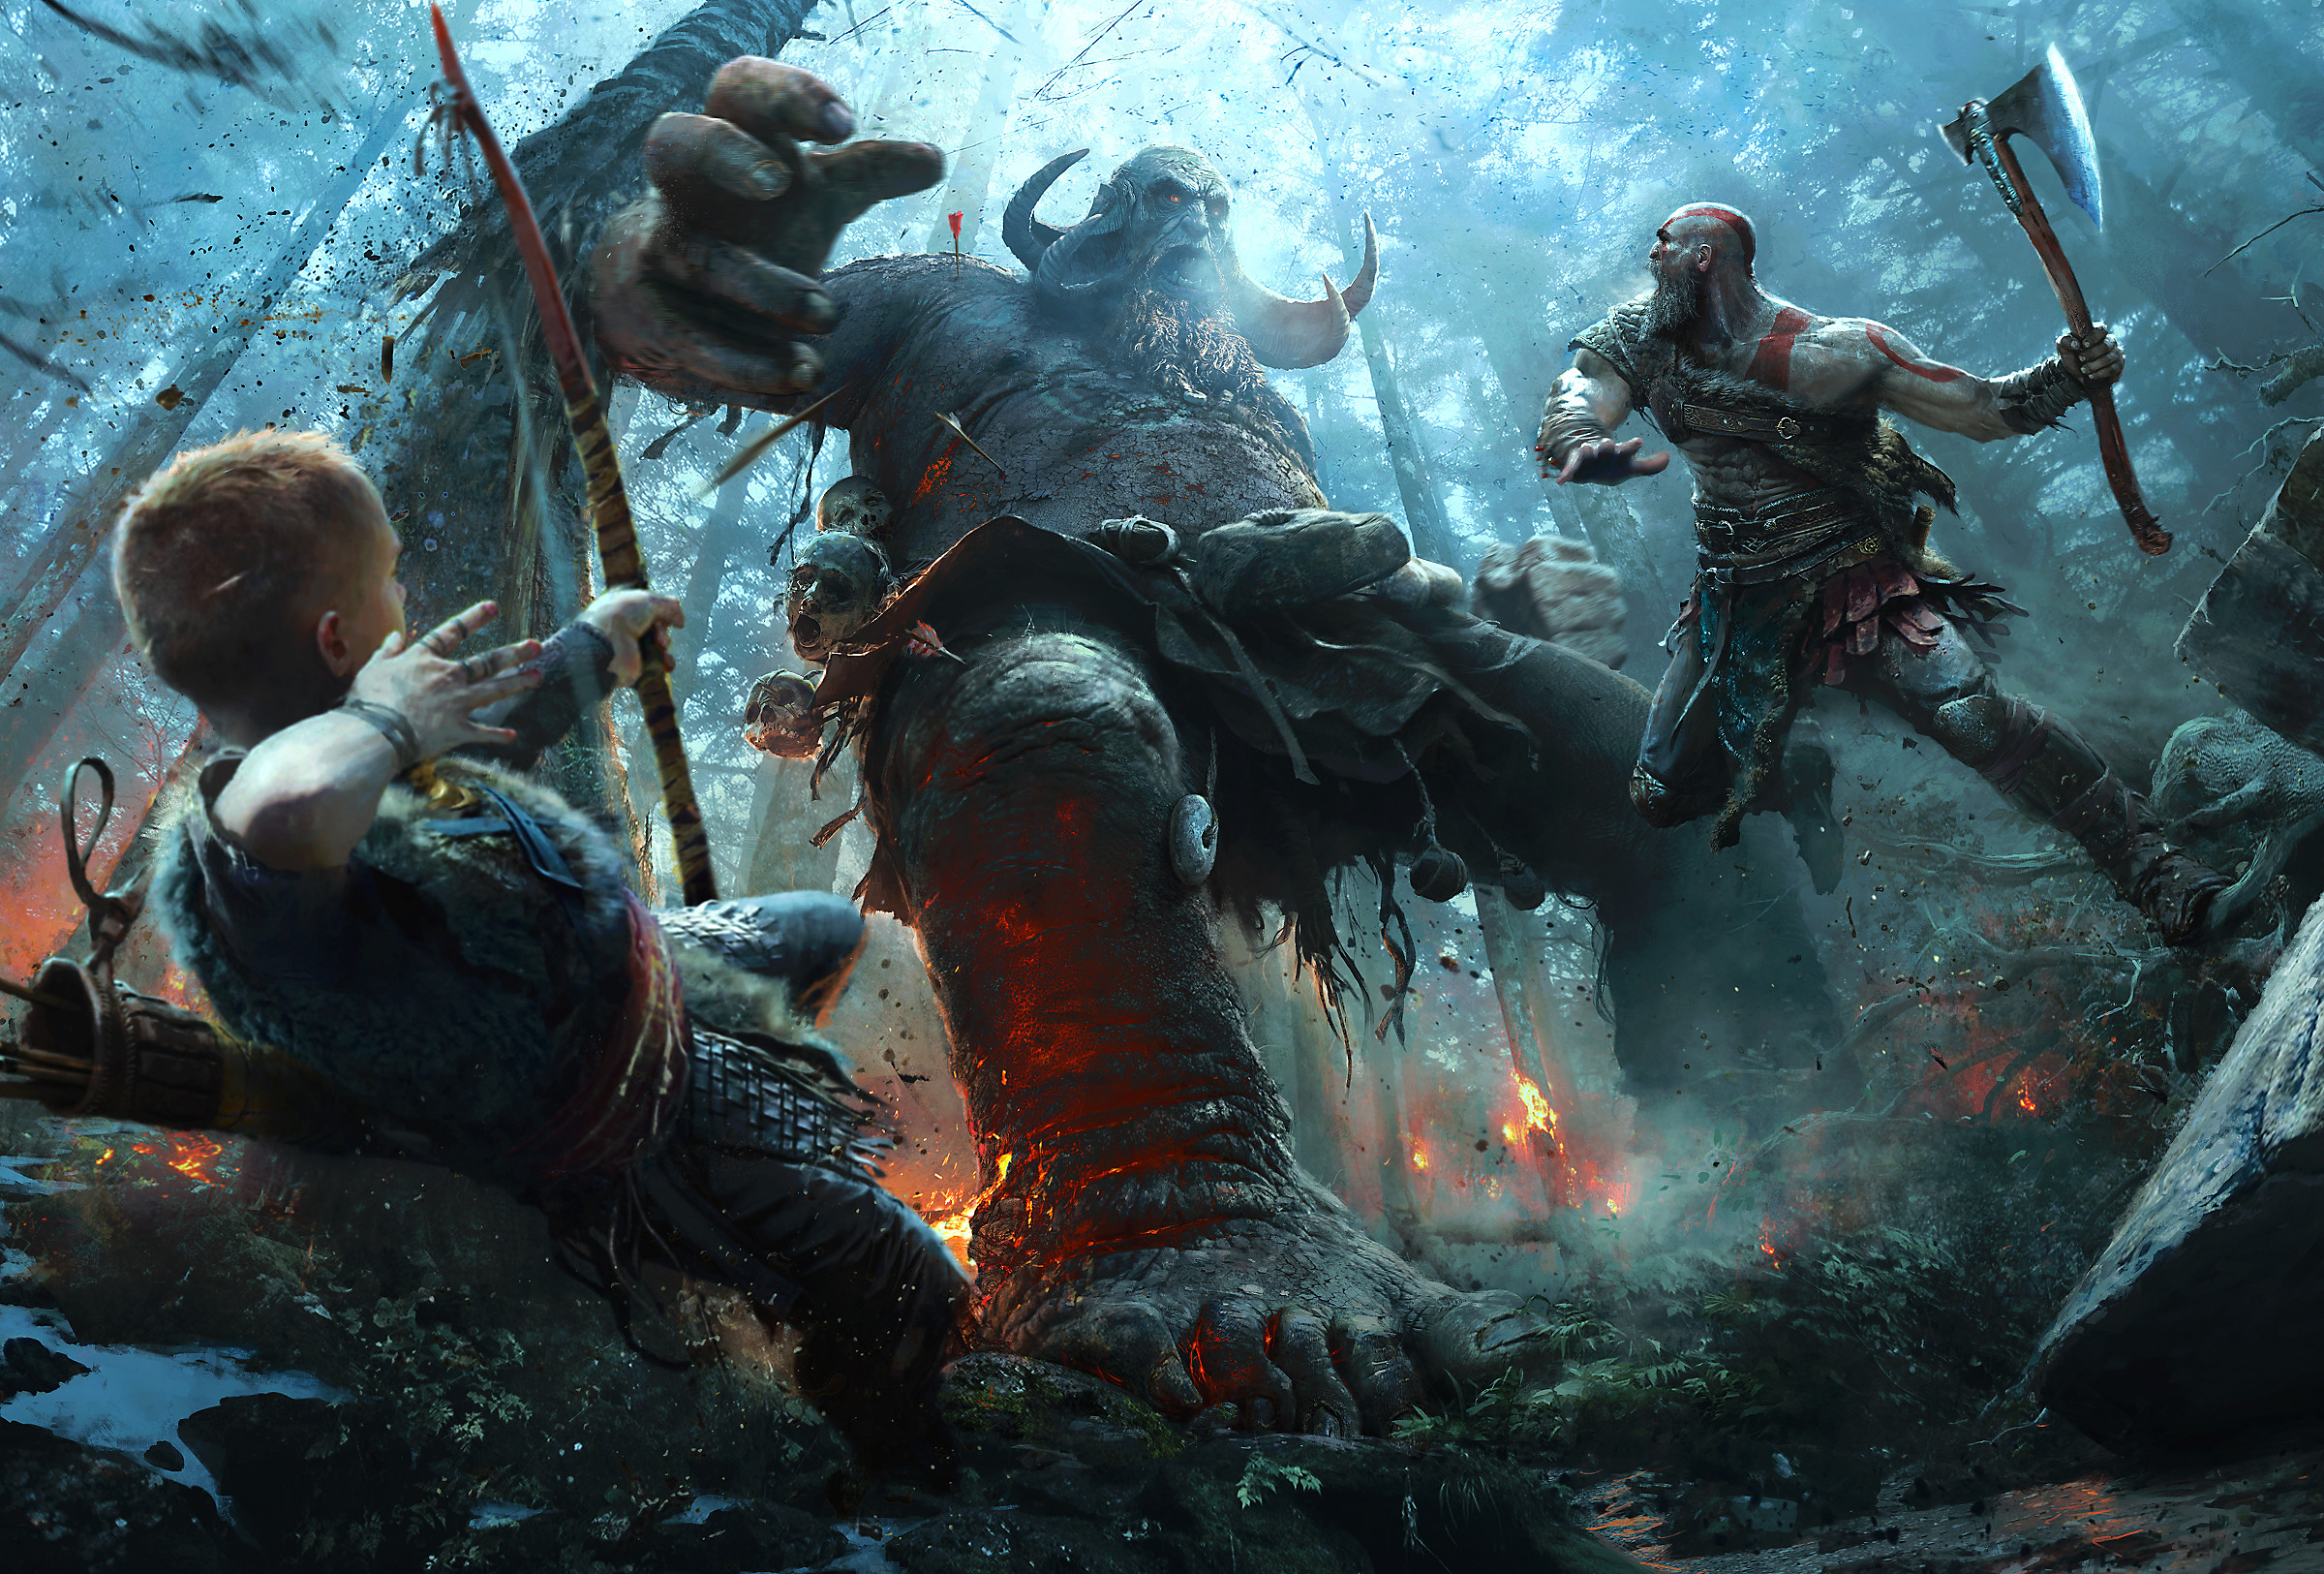 This new God of War book is all from the son's perspective screenshot